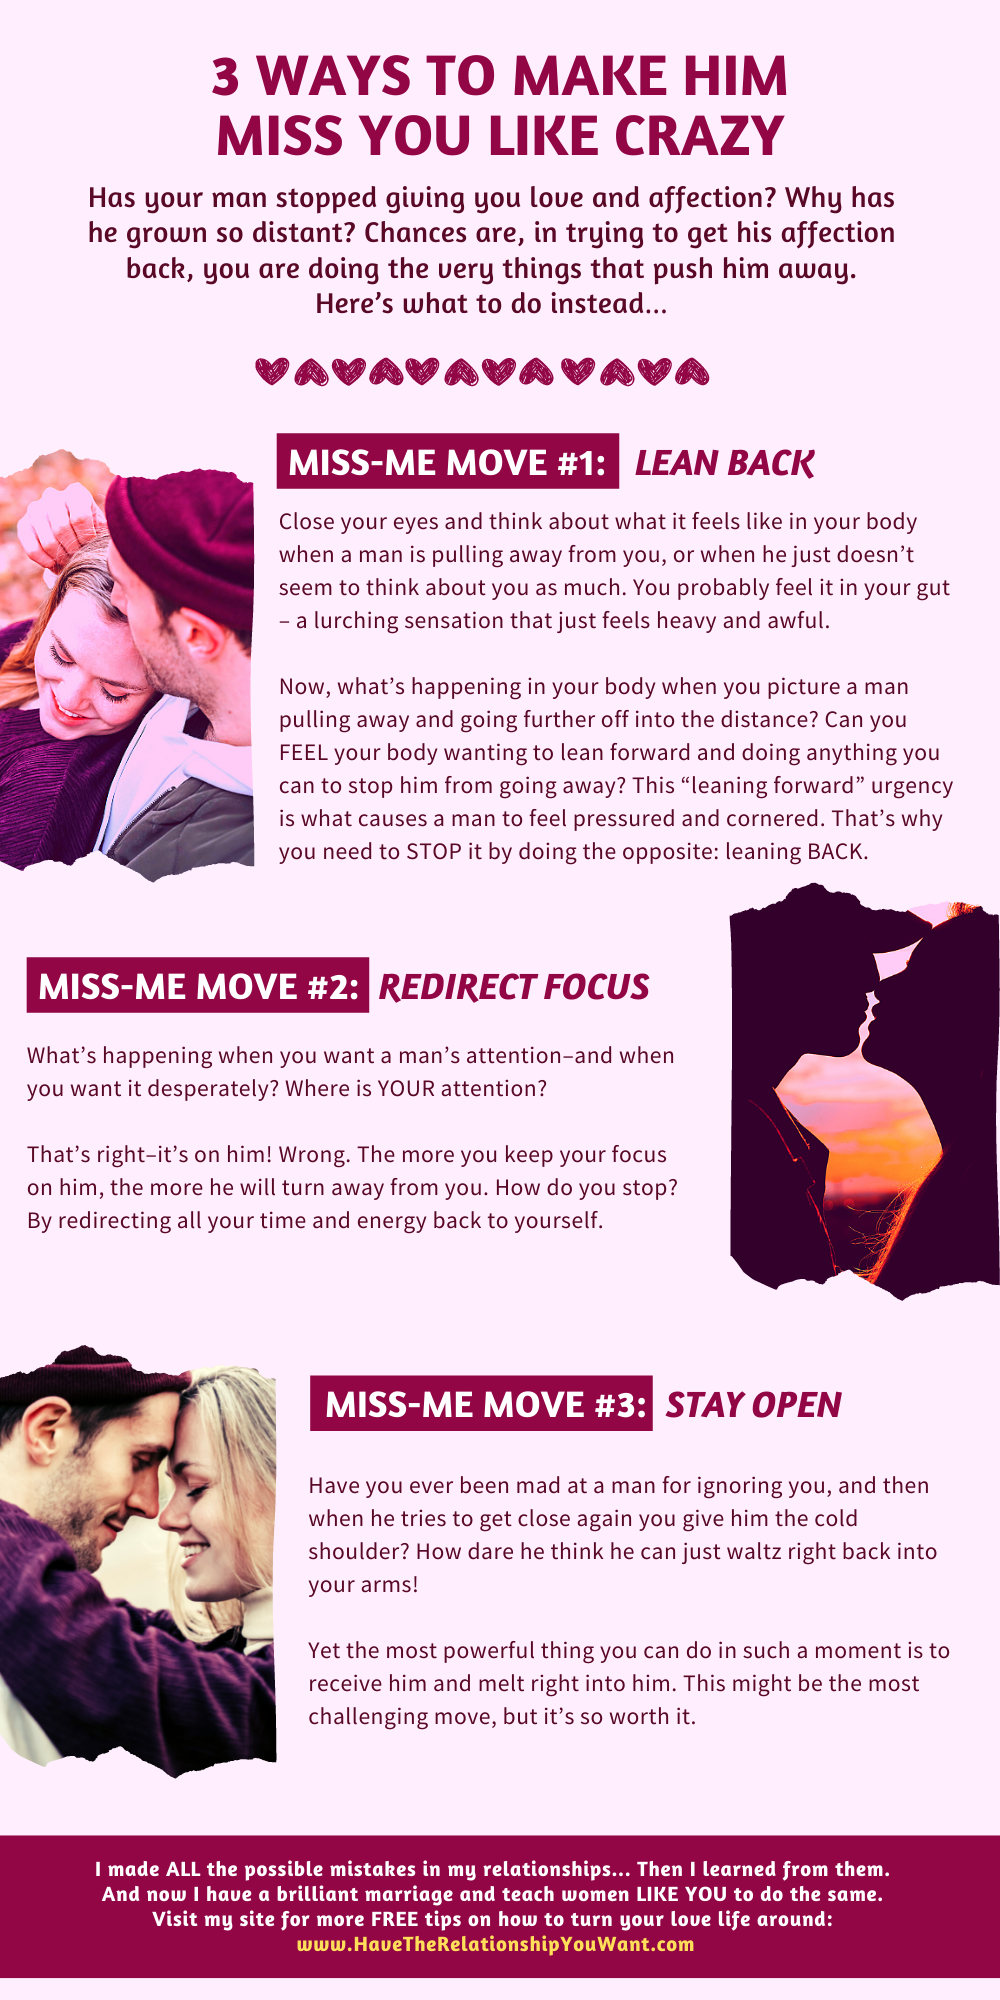 3 Ways To Make Him MISS YOU Like Crazy